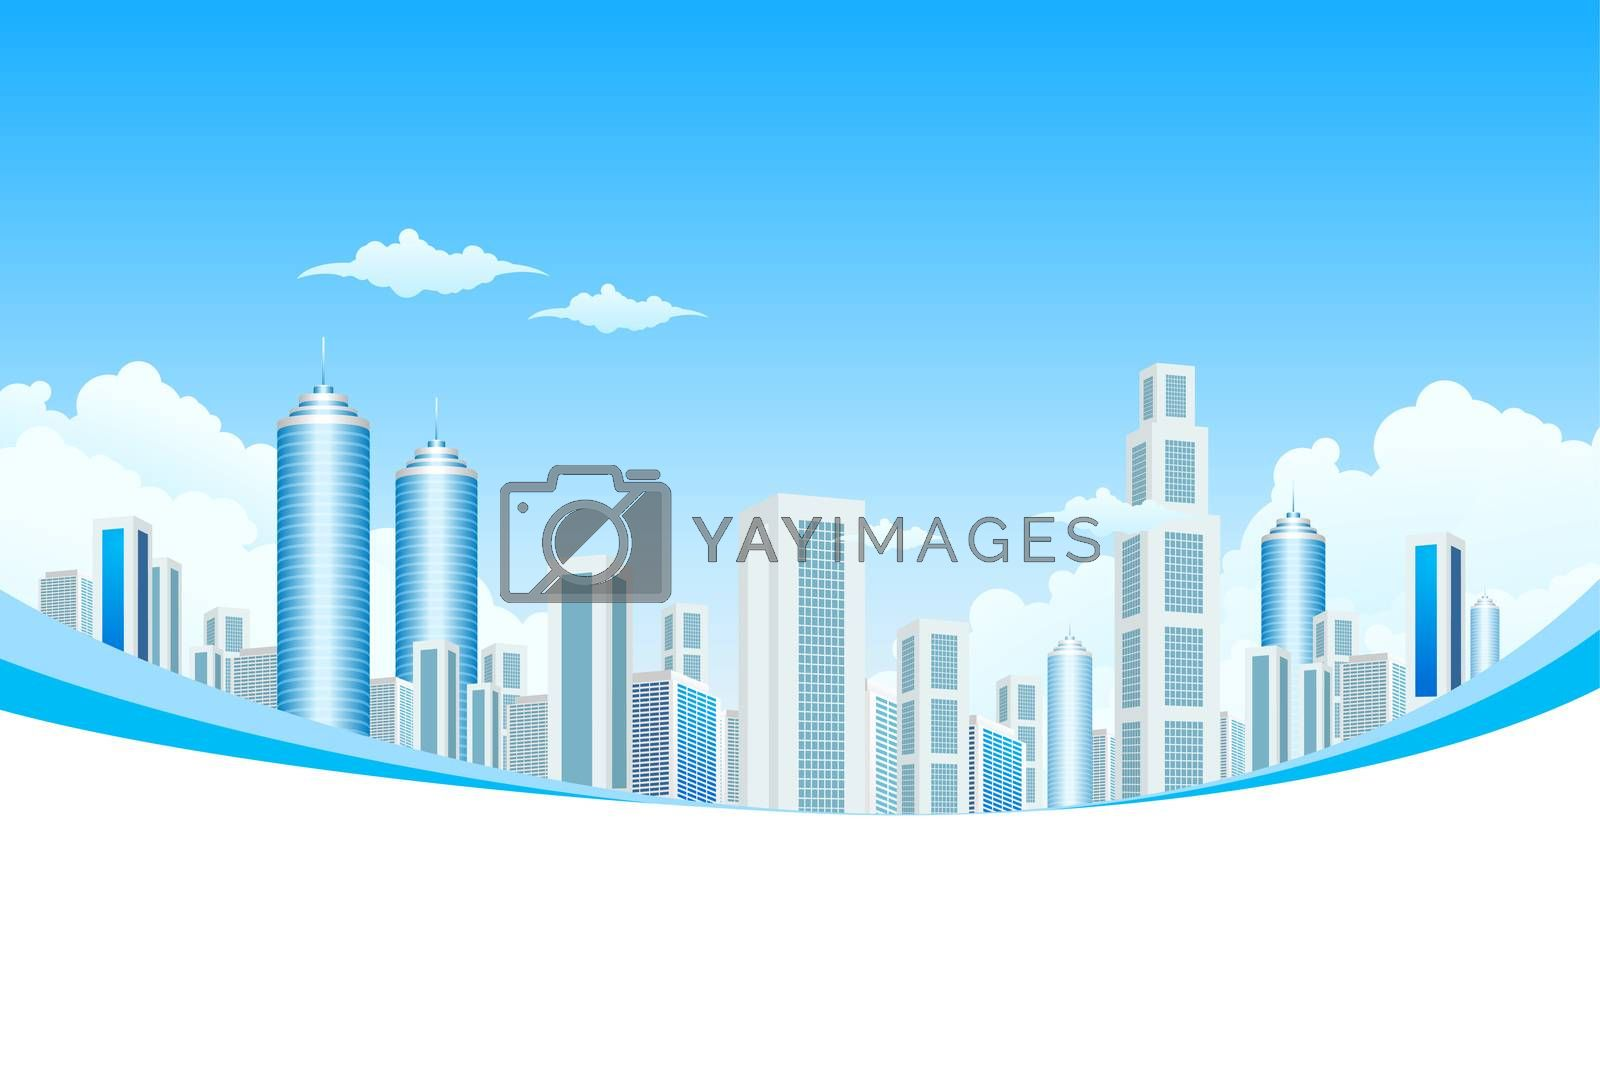 New Modern City in Clouds by WaD